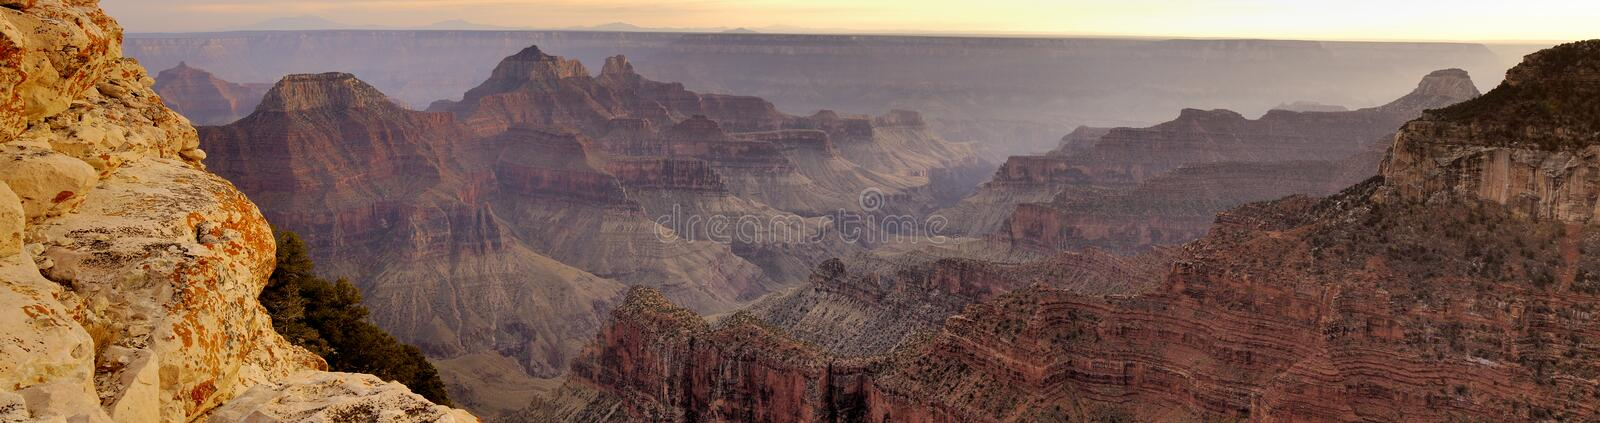 Panorama of Grand Canyon from Bright Angel Viewpoint royalty free stock images